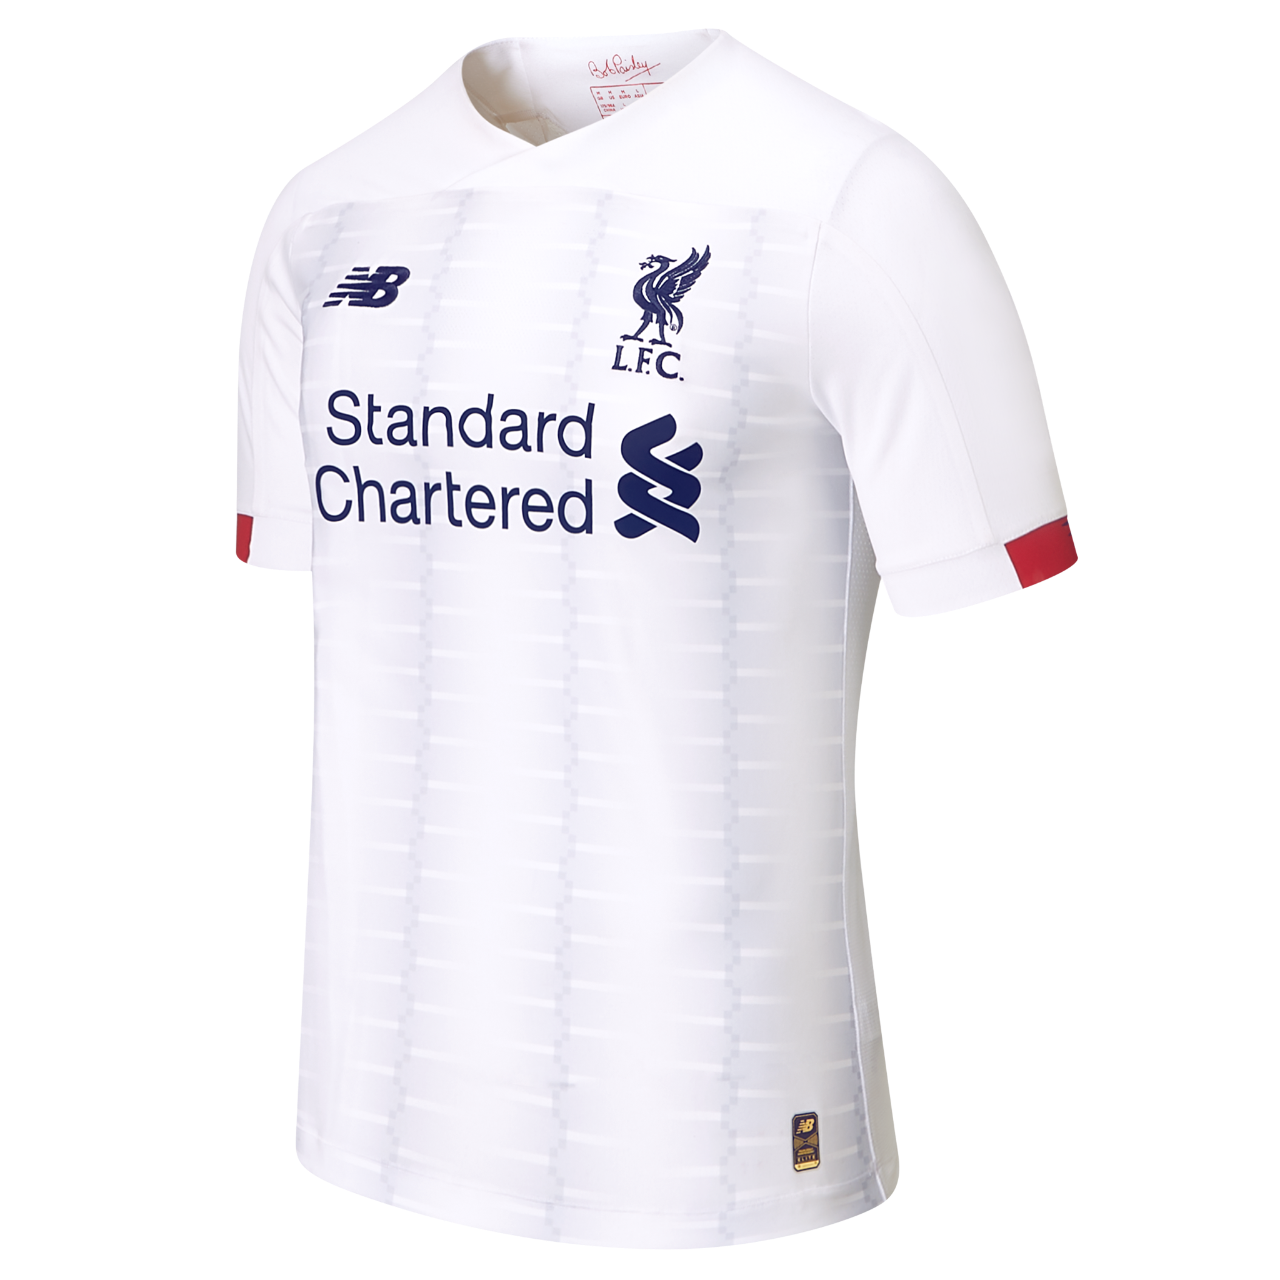 release date 7d40f 2a32a Liverpool unveil lovely new white away kit for 2019/20 ...